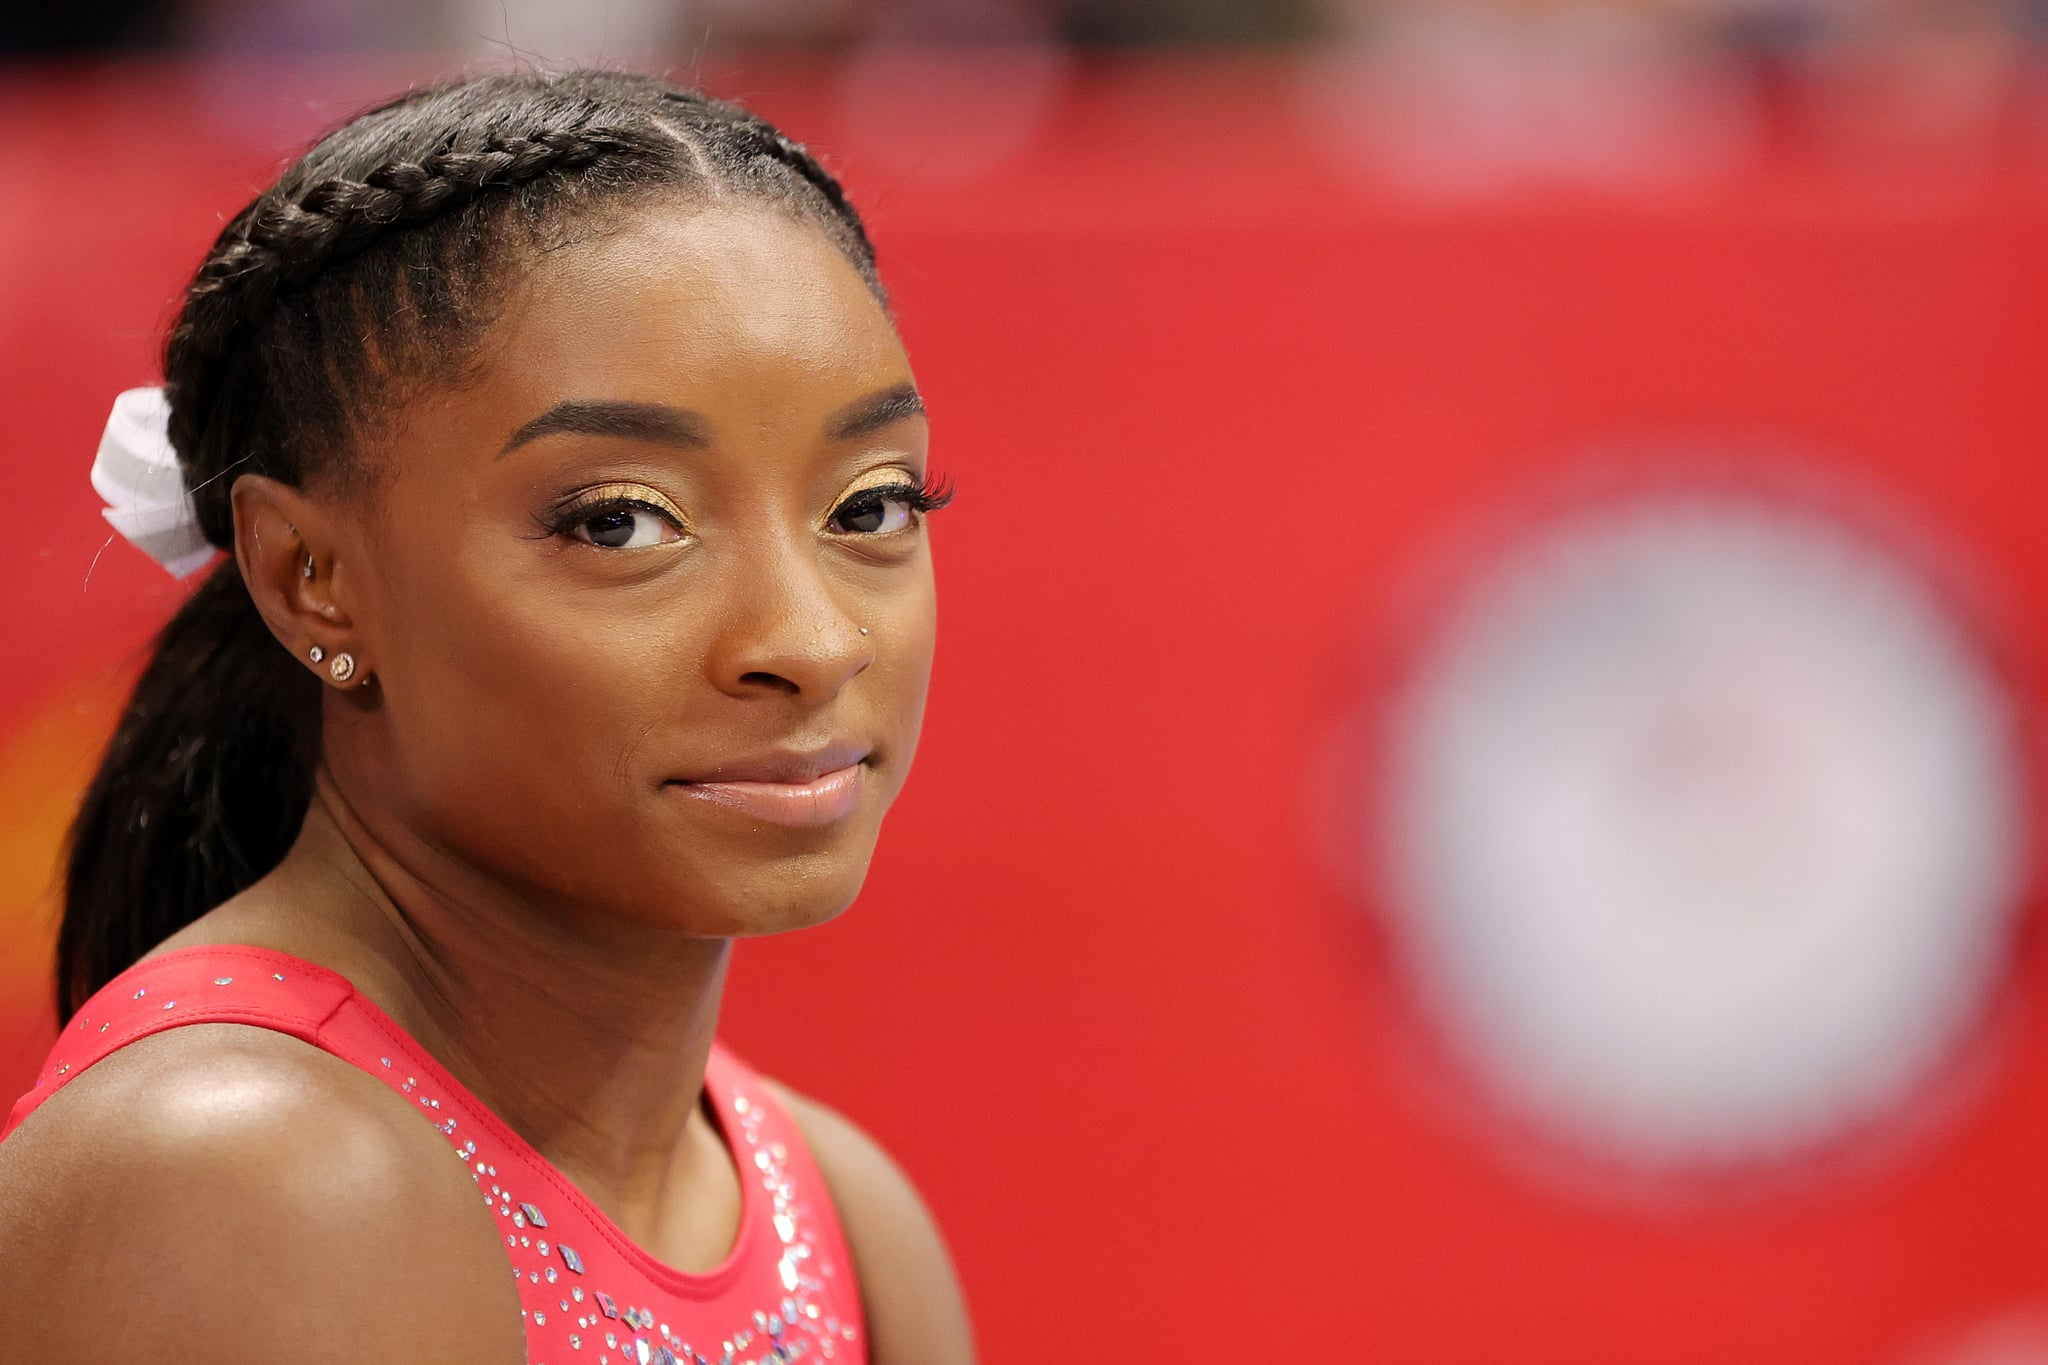 ST LOUIS, MISSOURI - JUNE 27: Simone Biles looks on during warm ups prior to the Women's competition of the 2021 U.S. Gymnastics Olympic Trials at America's Center on June 27, 2021 in St Louis, Missouri. (Photo by Carmen Mandato/Getty Images)